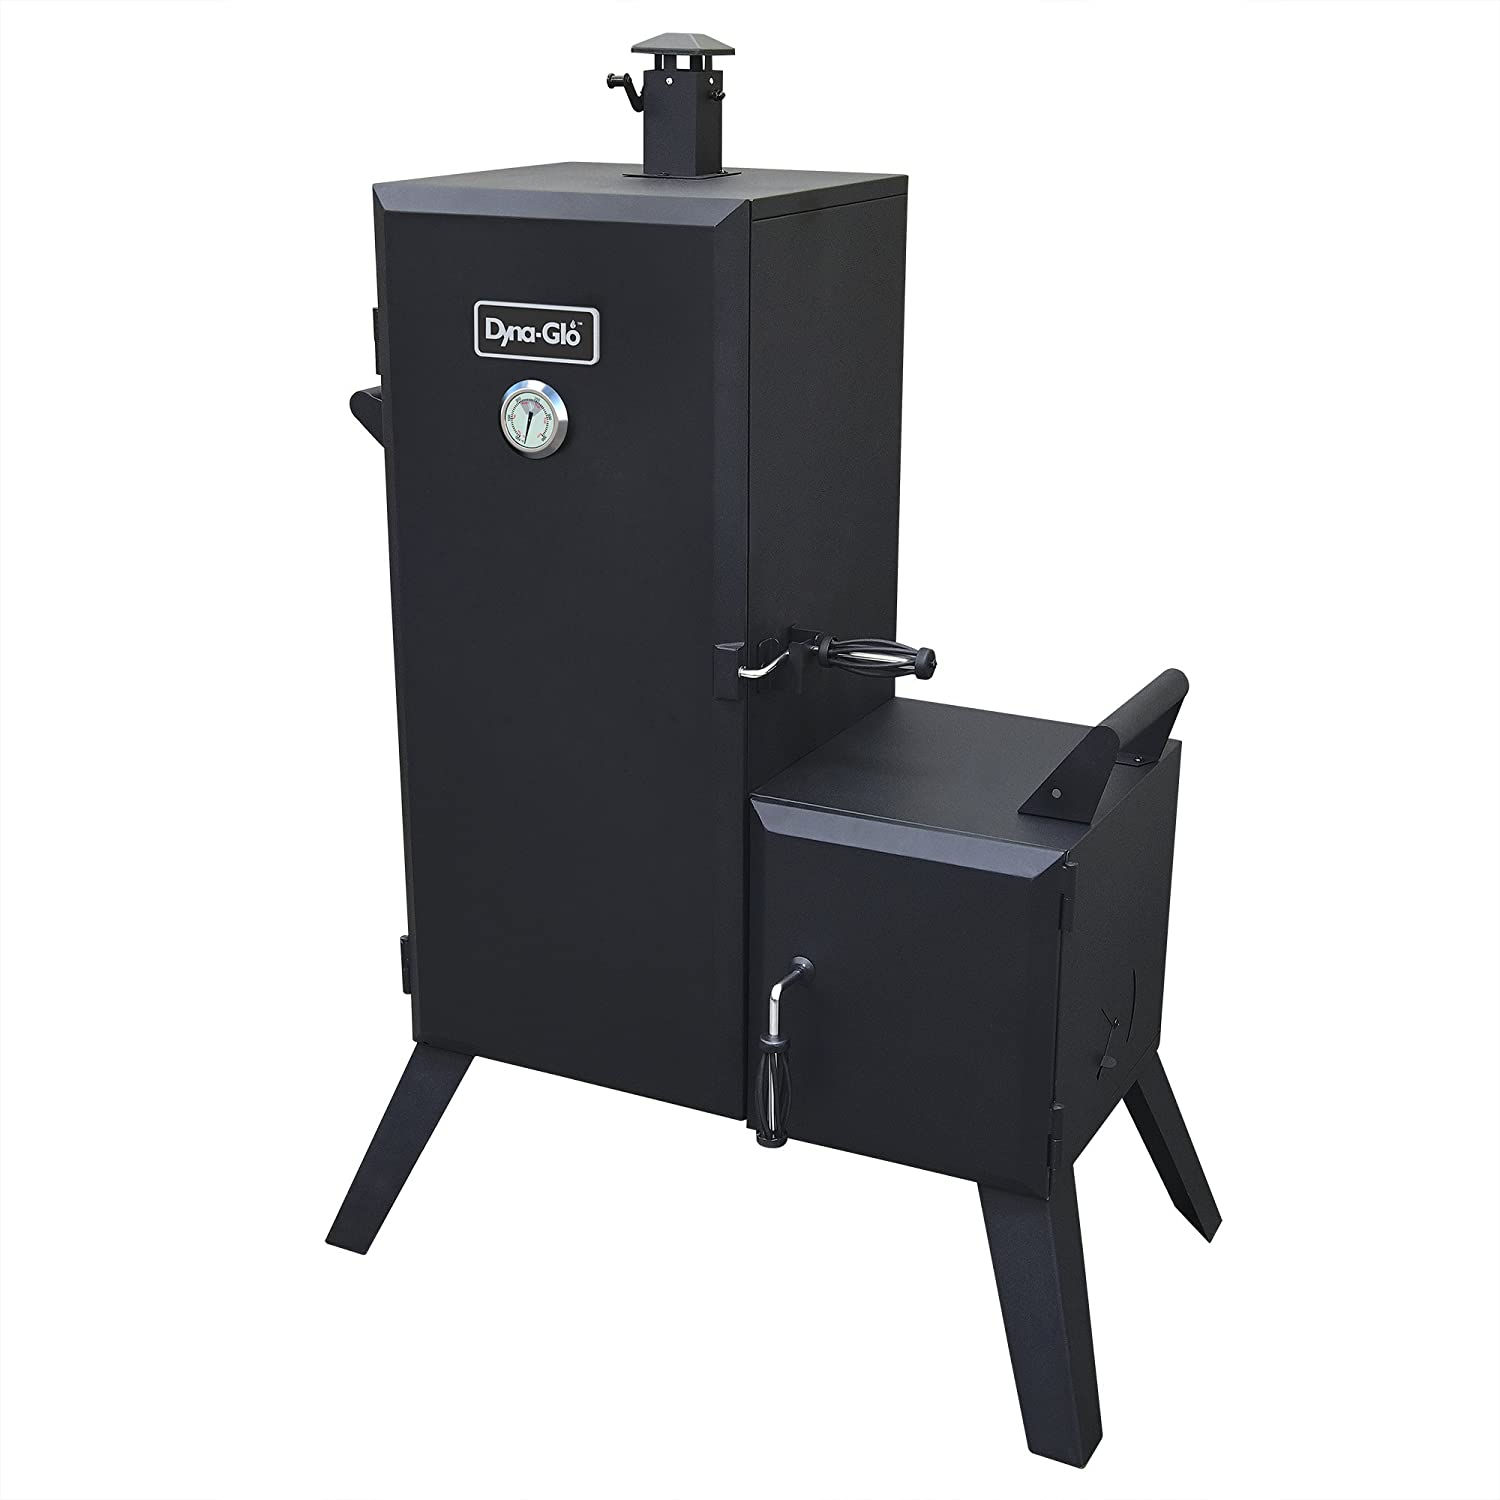 Best Offset Smoker to Buy – Choose One!